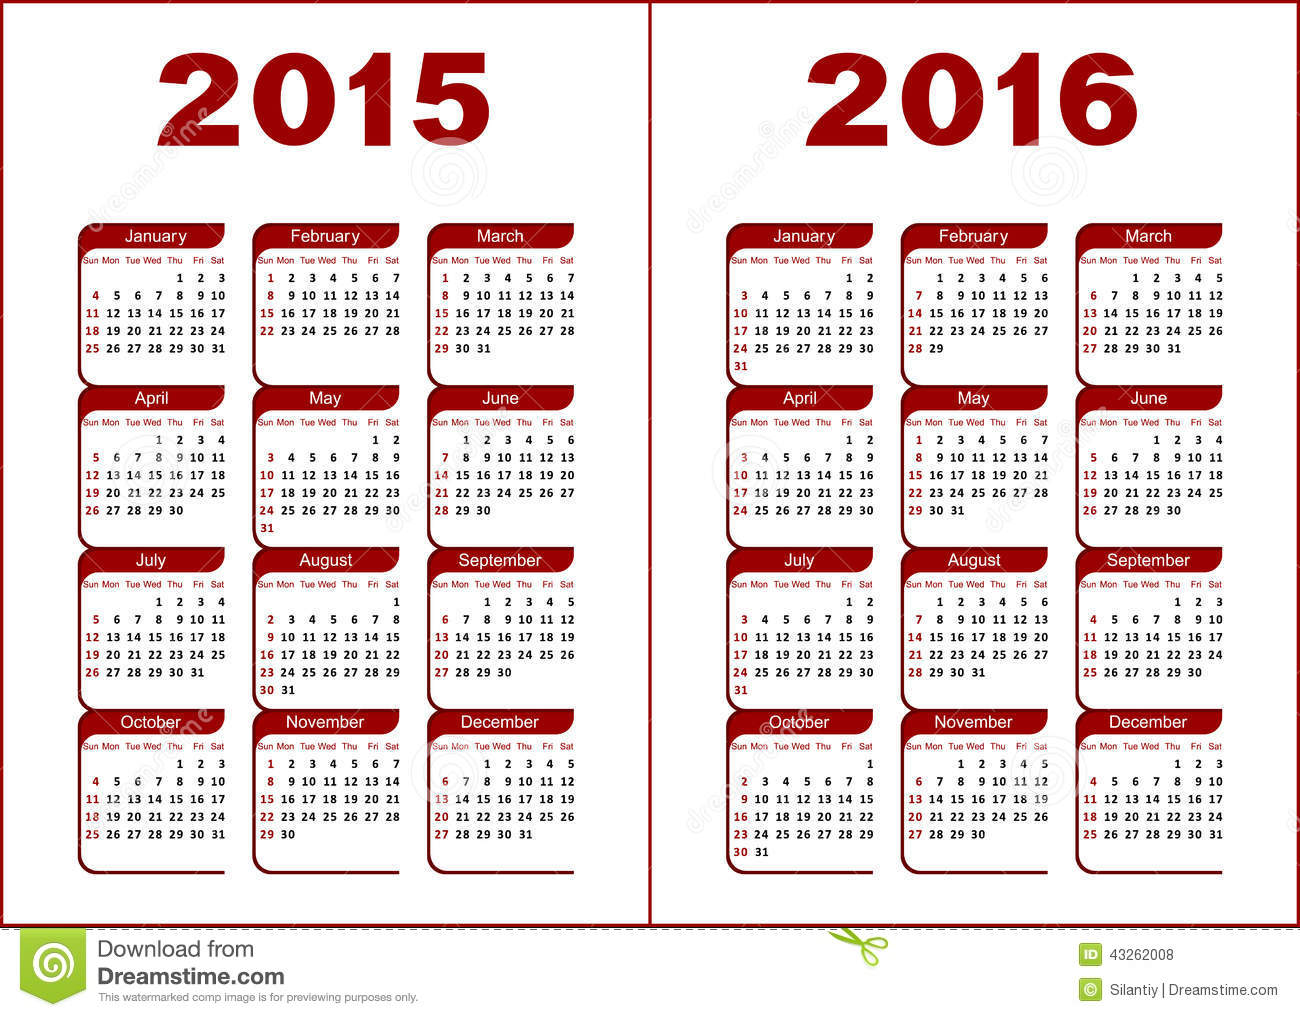 http://www.dreamstime.com/royalty-free-stock-photos-calendar-red-black-letters-figures-white-background-image43262008